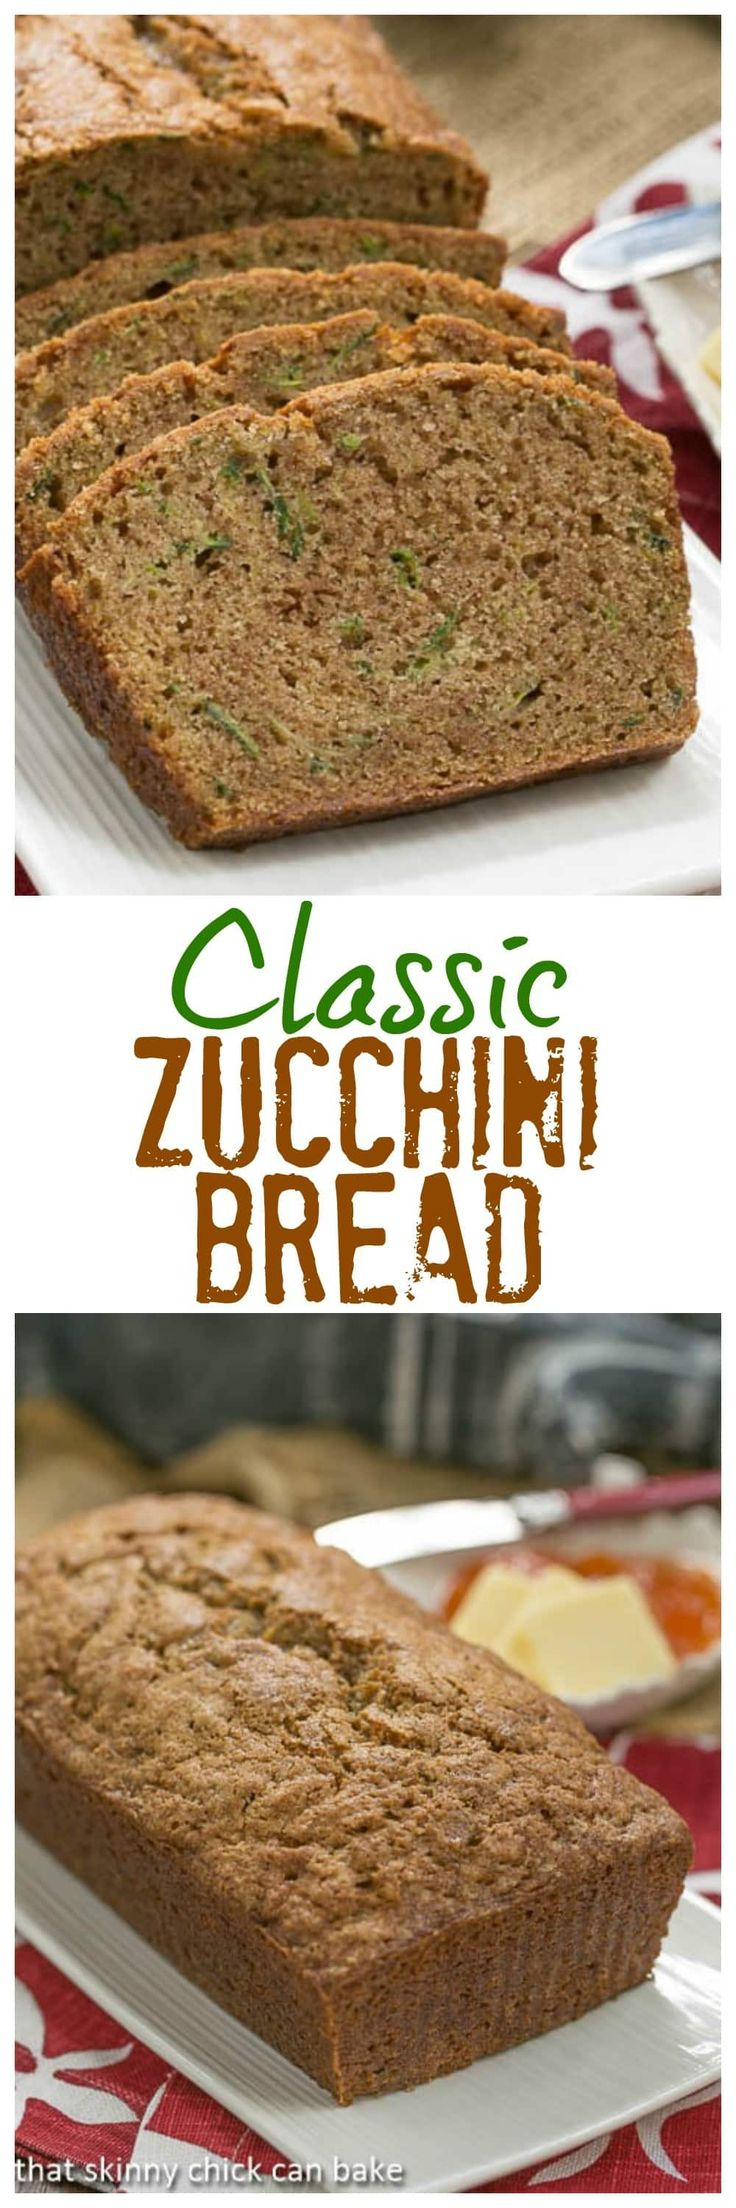 Classic Zucchini Bread | An irresistible cinnamon spiced quick bread recipe @lizzydo